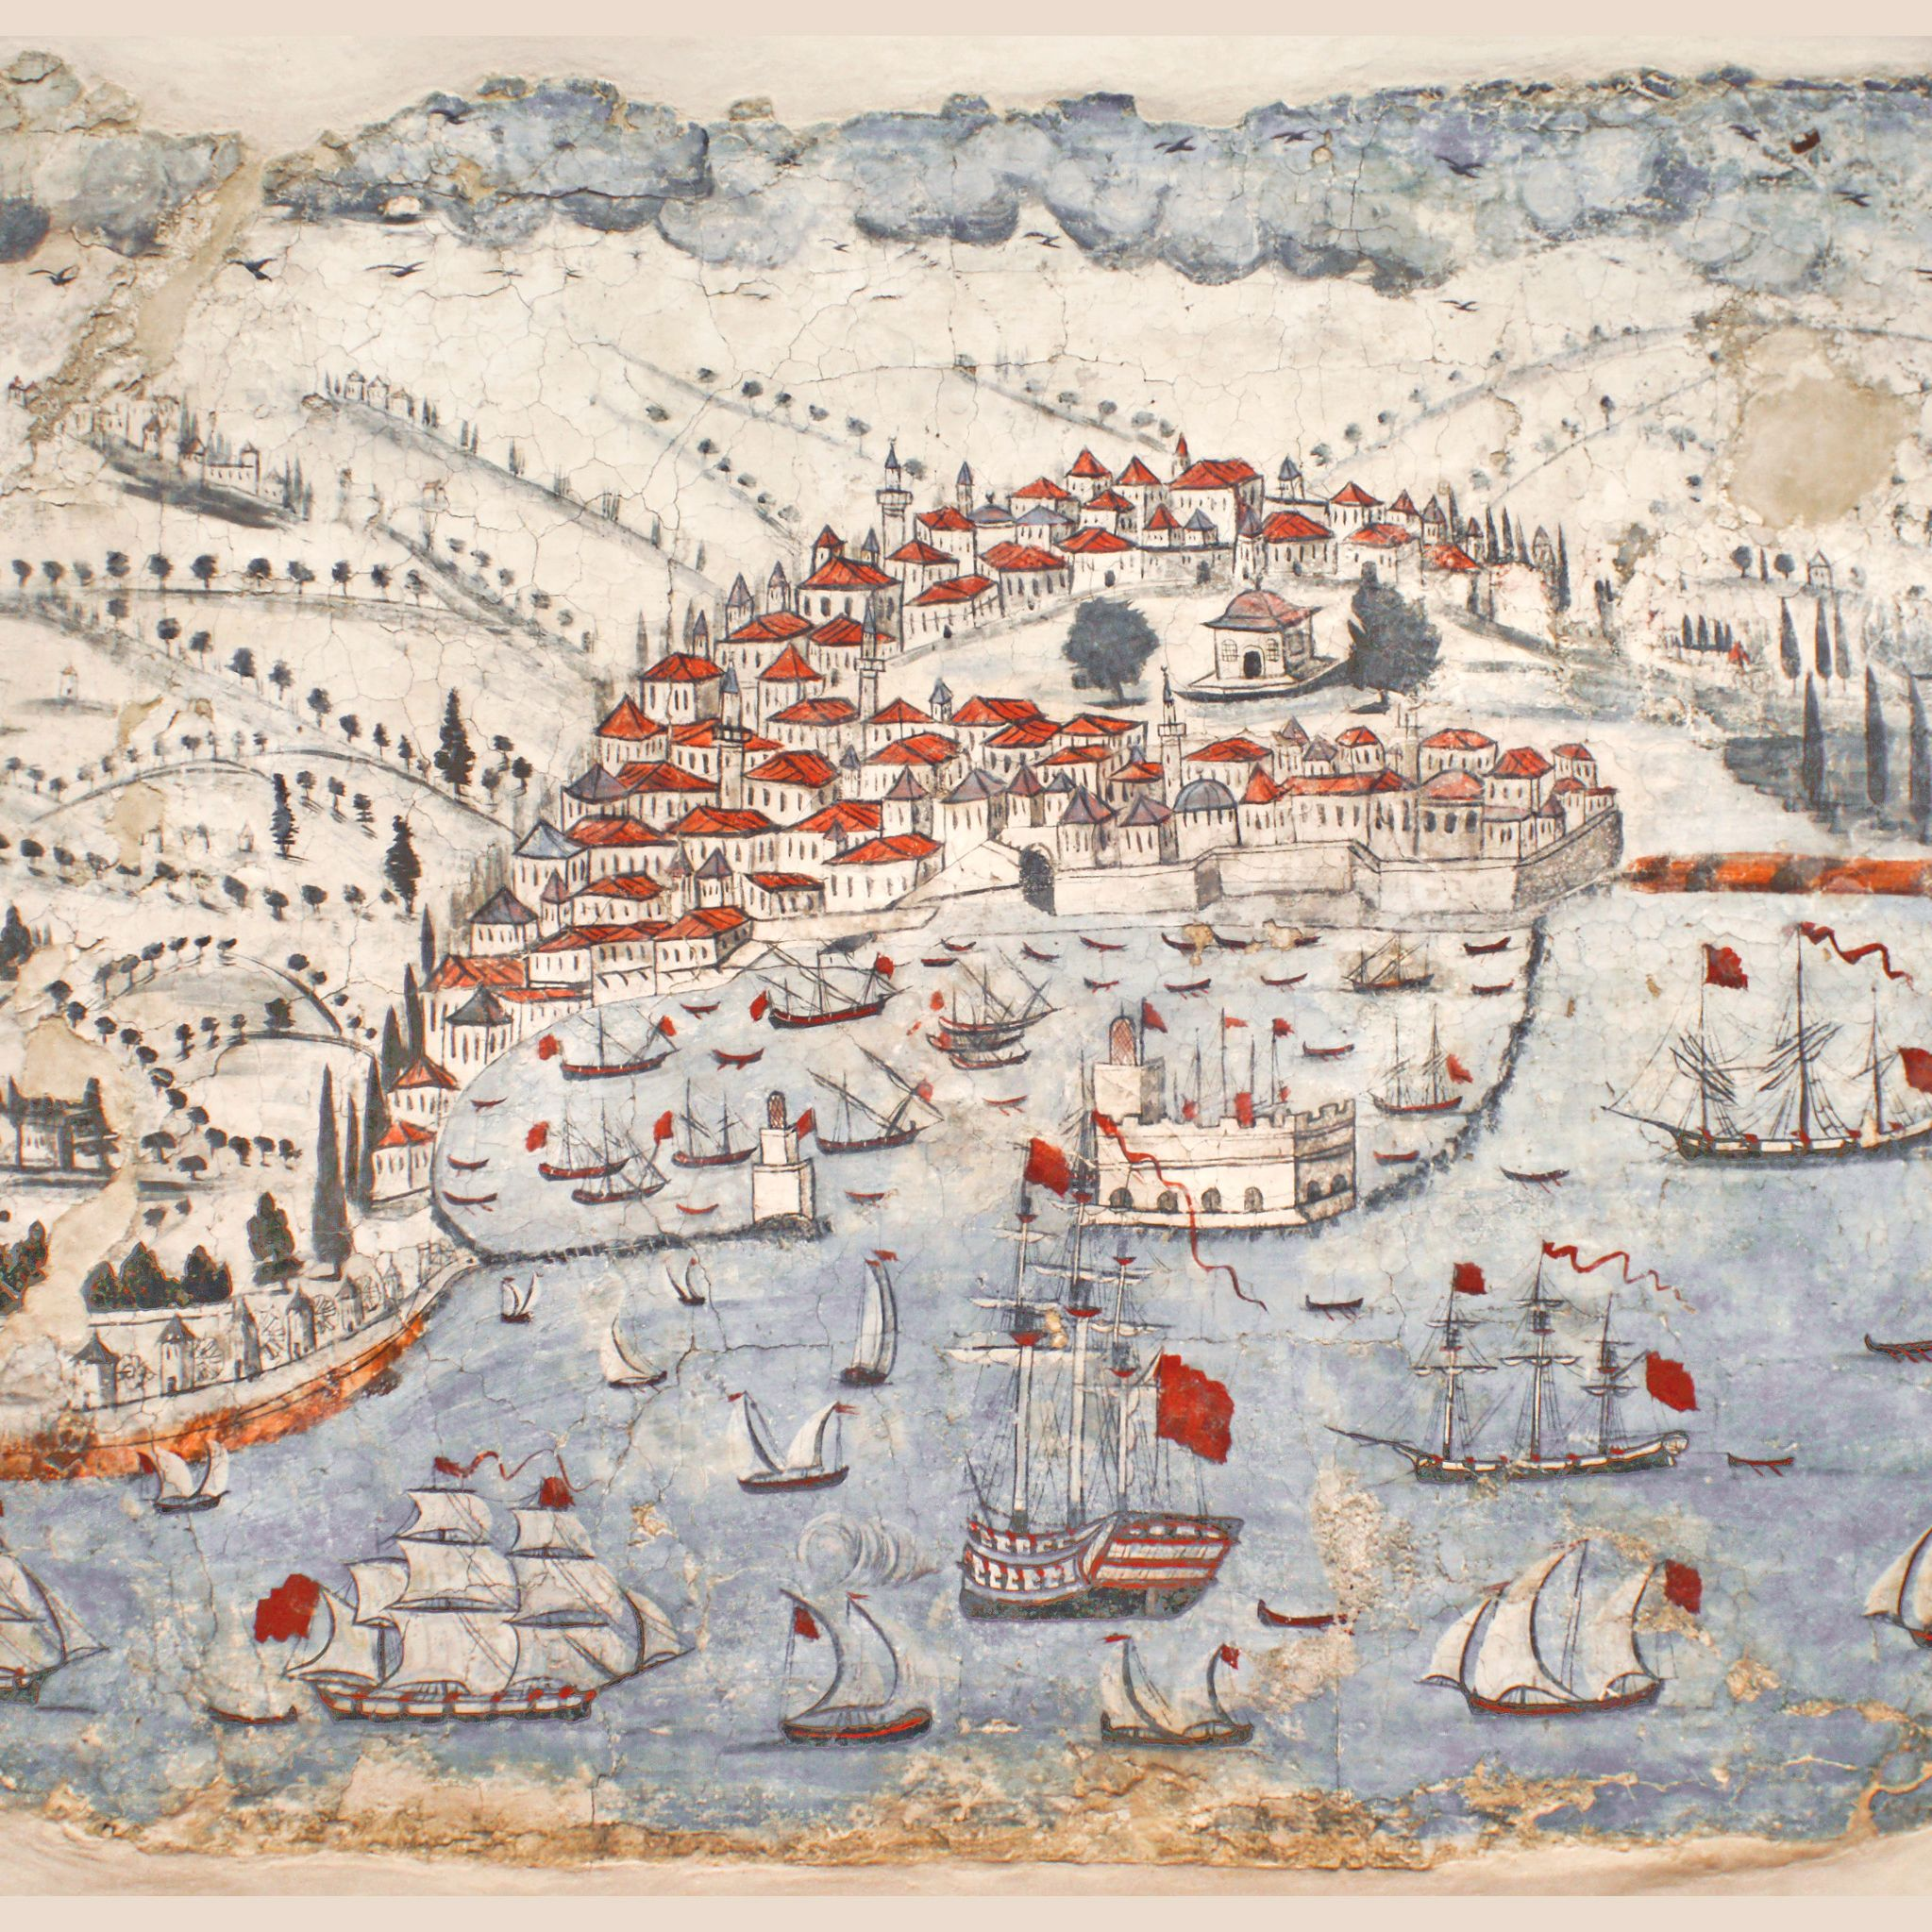 Piracy and Law in the Ottoman Mediterranean | Joshua White